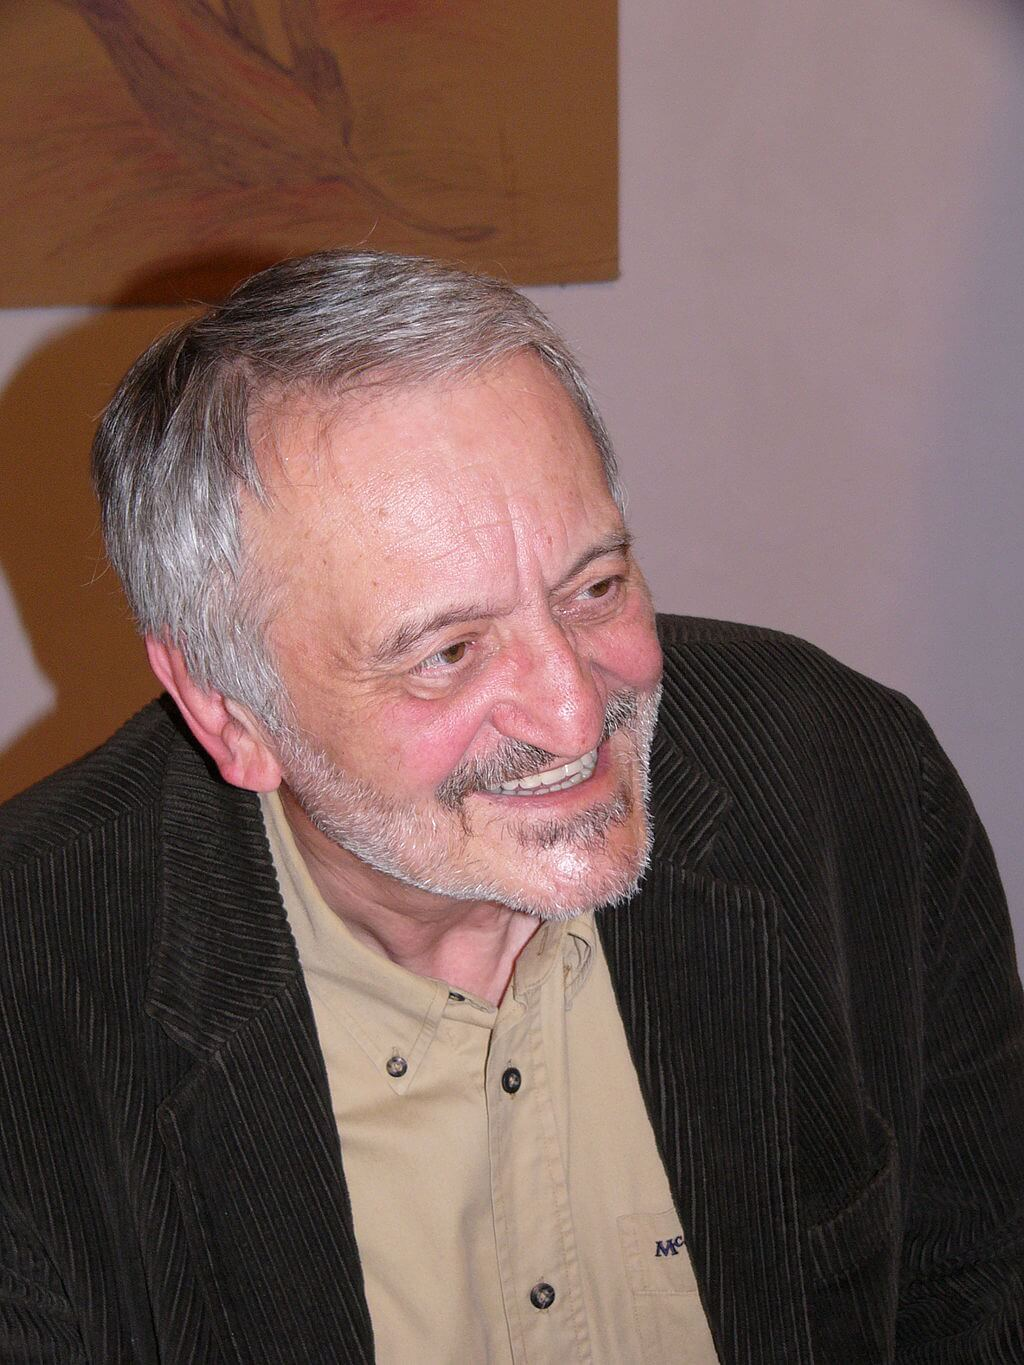 Michal Maňas, CC BY 3.0 <https://creativecommons.org/licenses/by/3.0>, via Wikimedia Commons